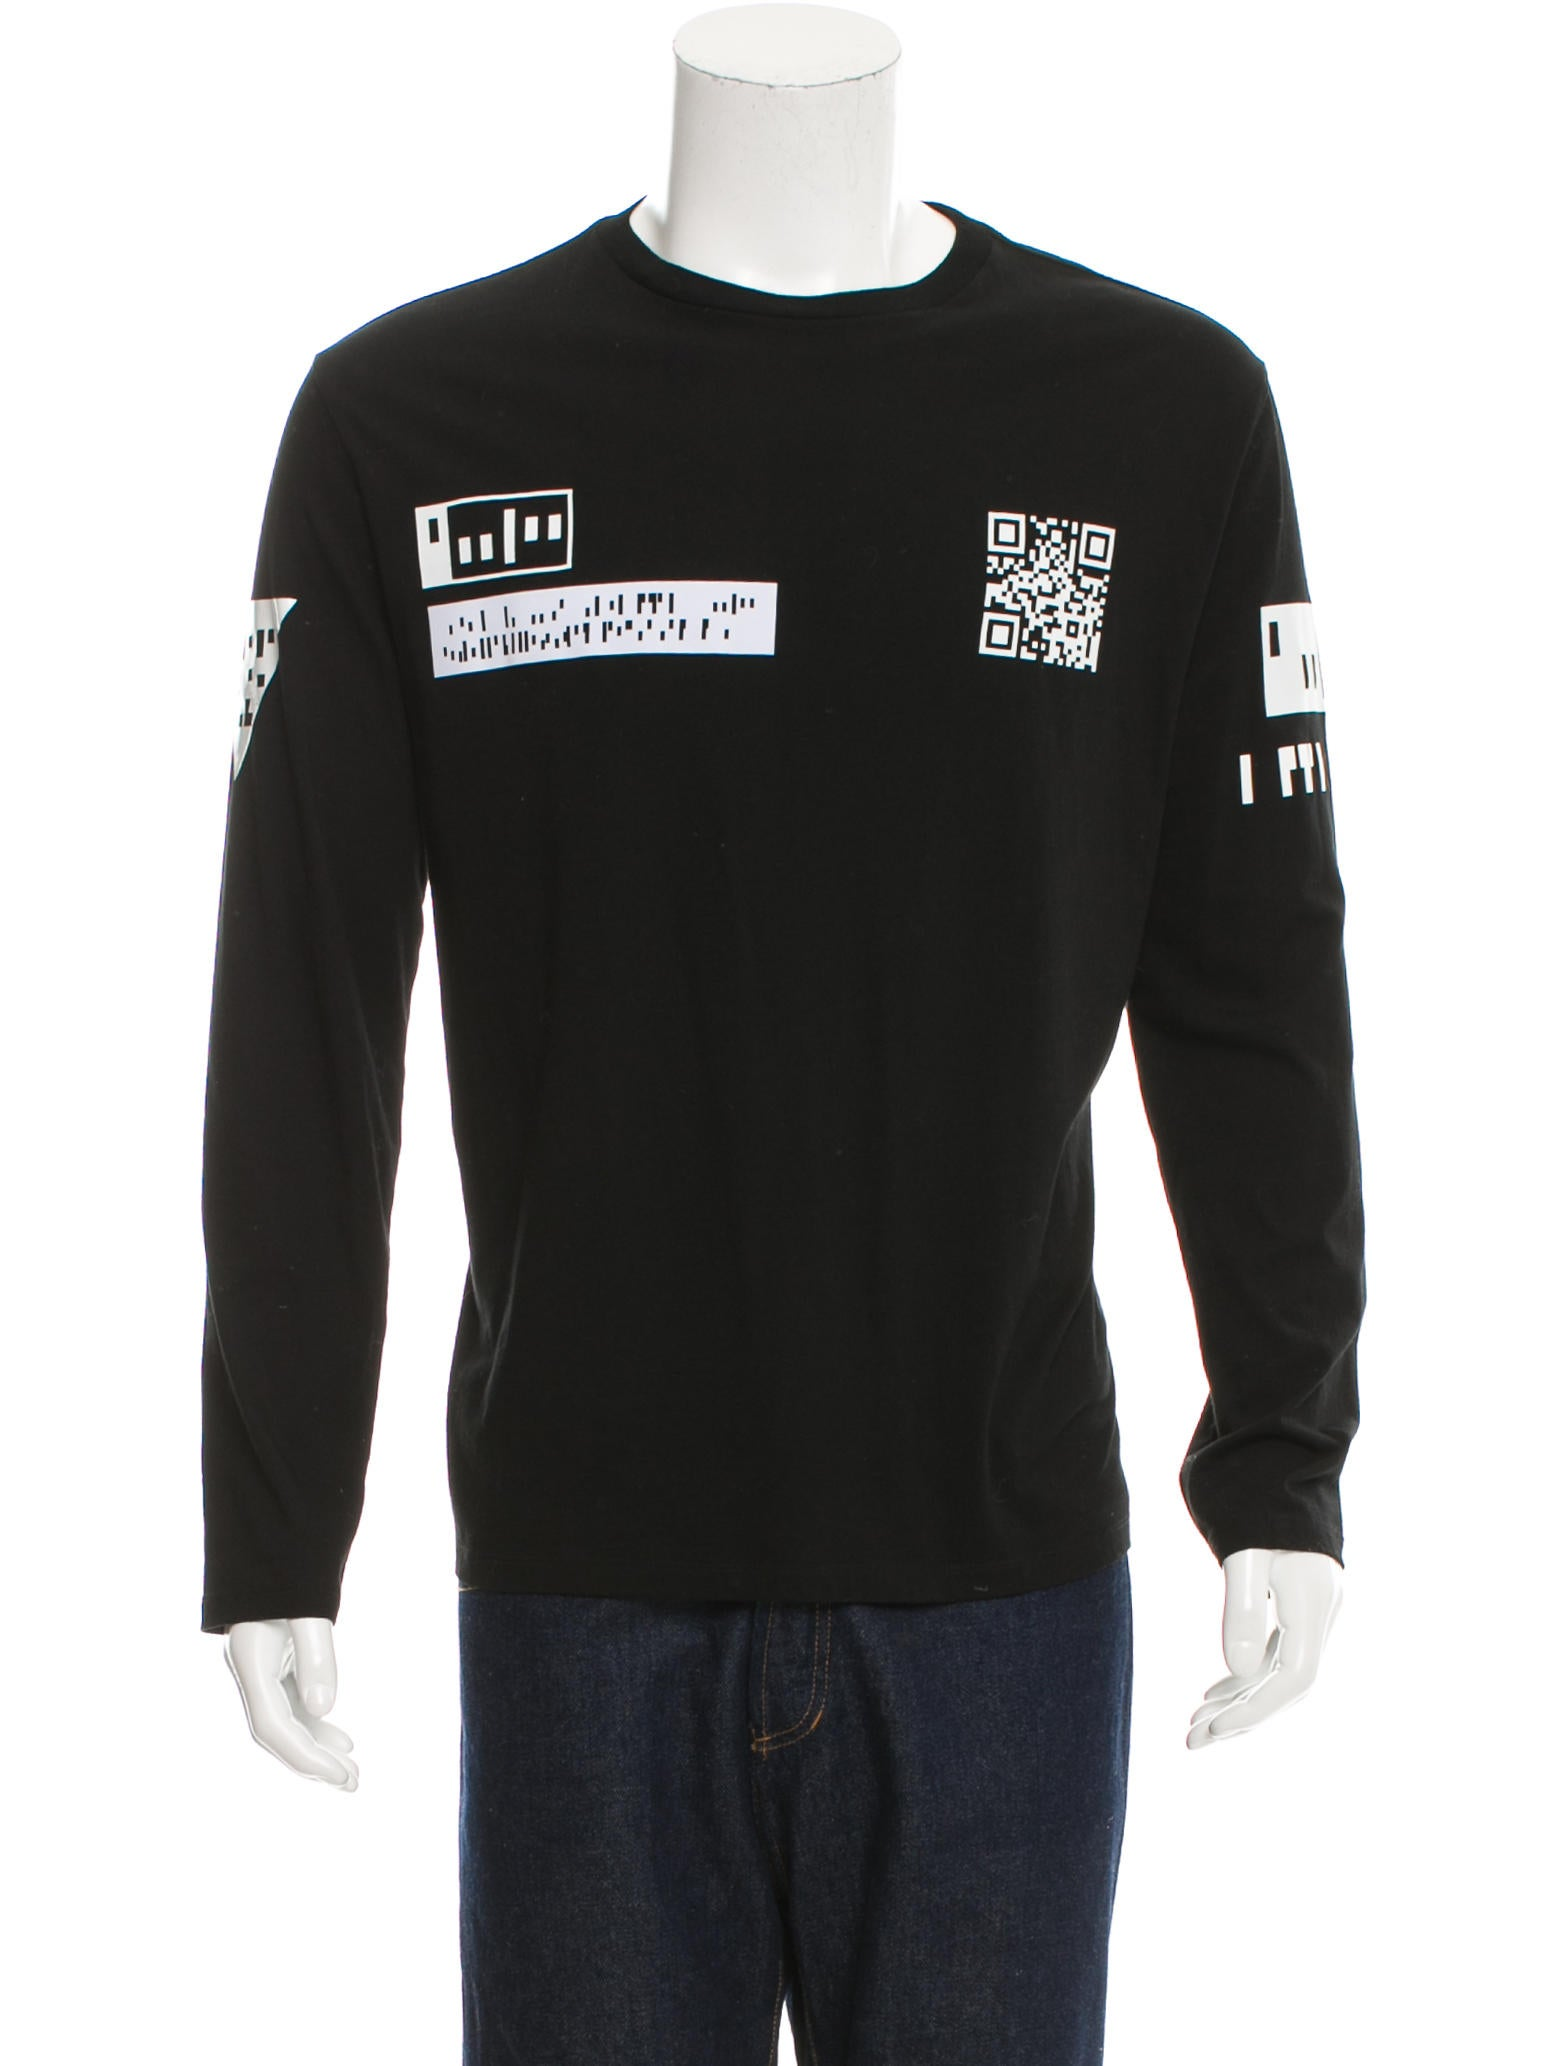 alexander wang printed crew neck t shirt clothing alx37360 the realreal. Black Bedroom Furniture Sets. Home Design Ideas